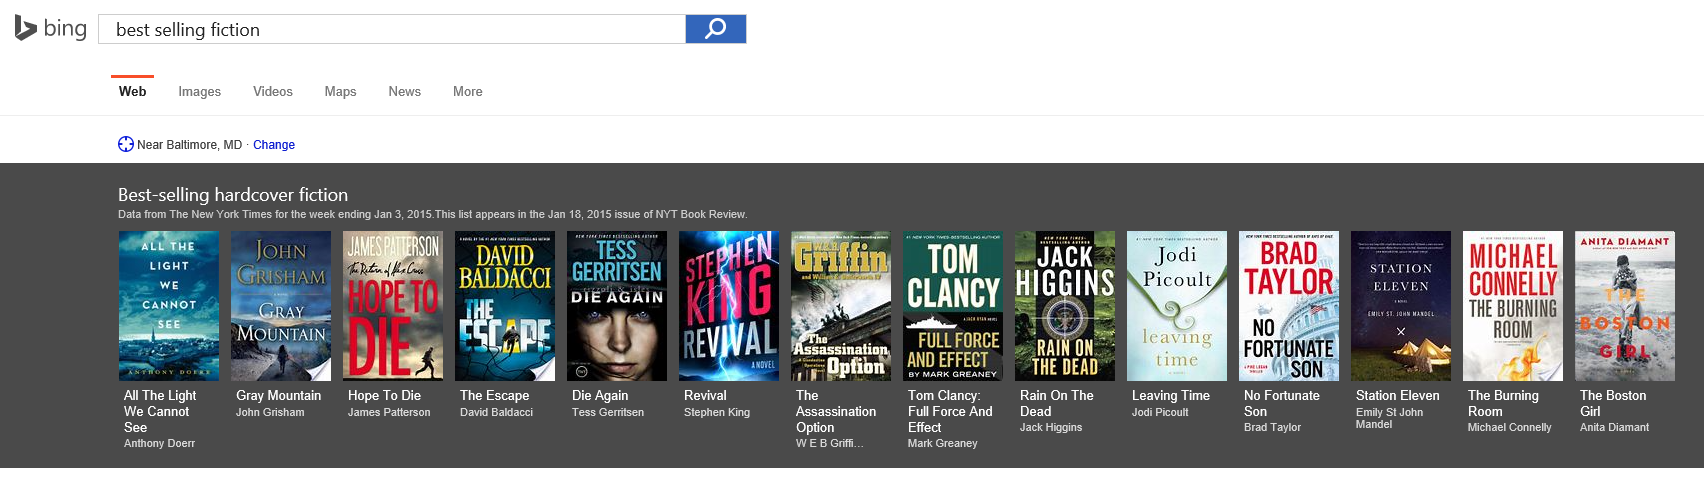 Best Selling Books Carousel in Bing Search Results